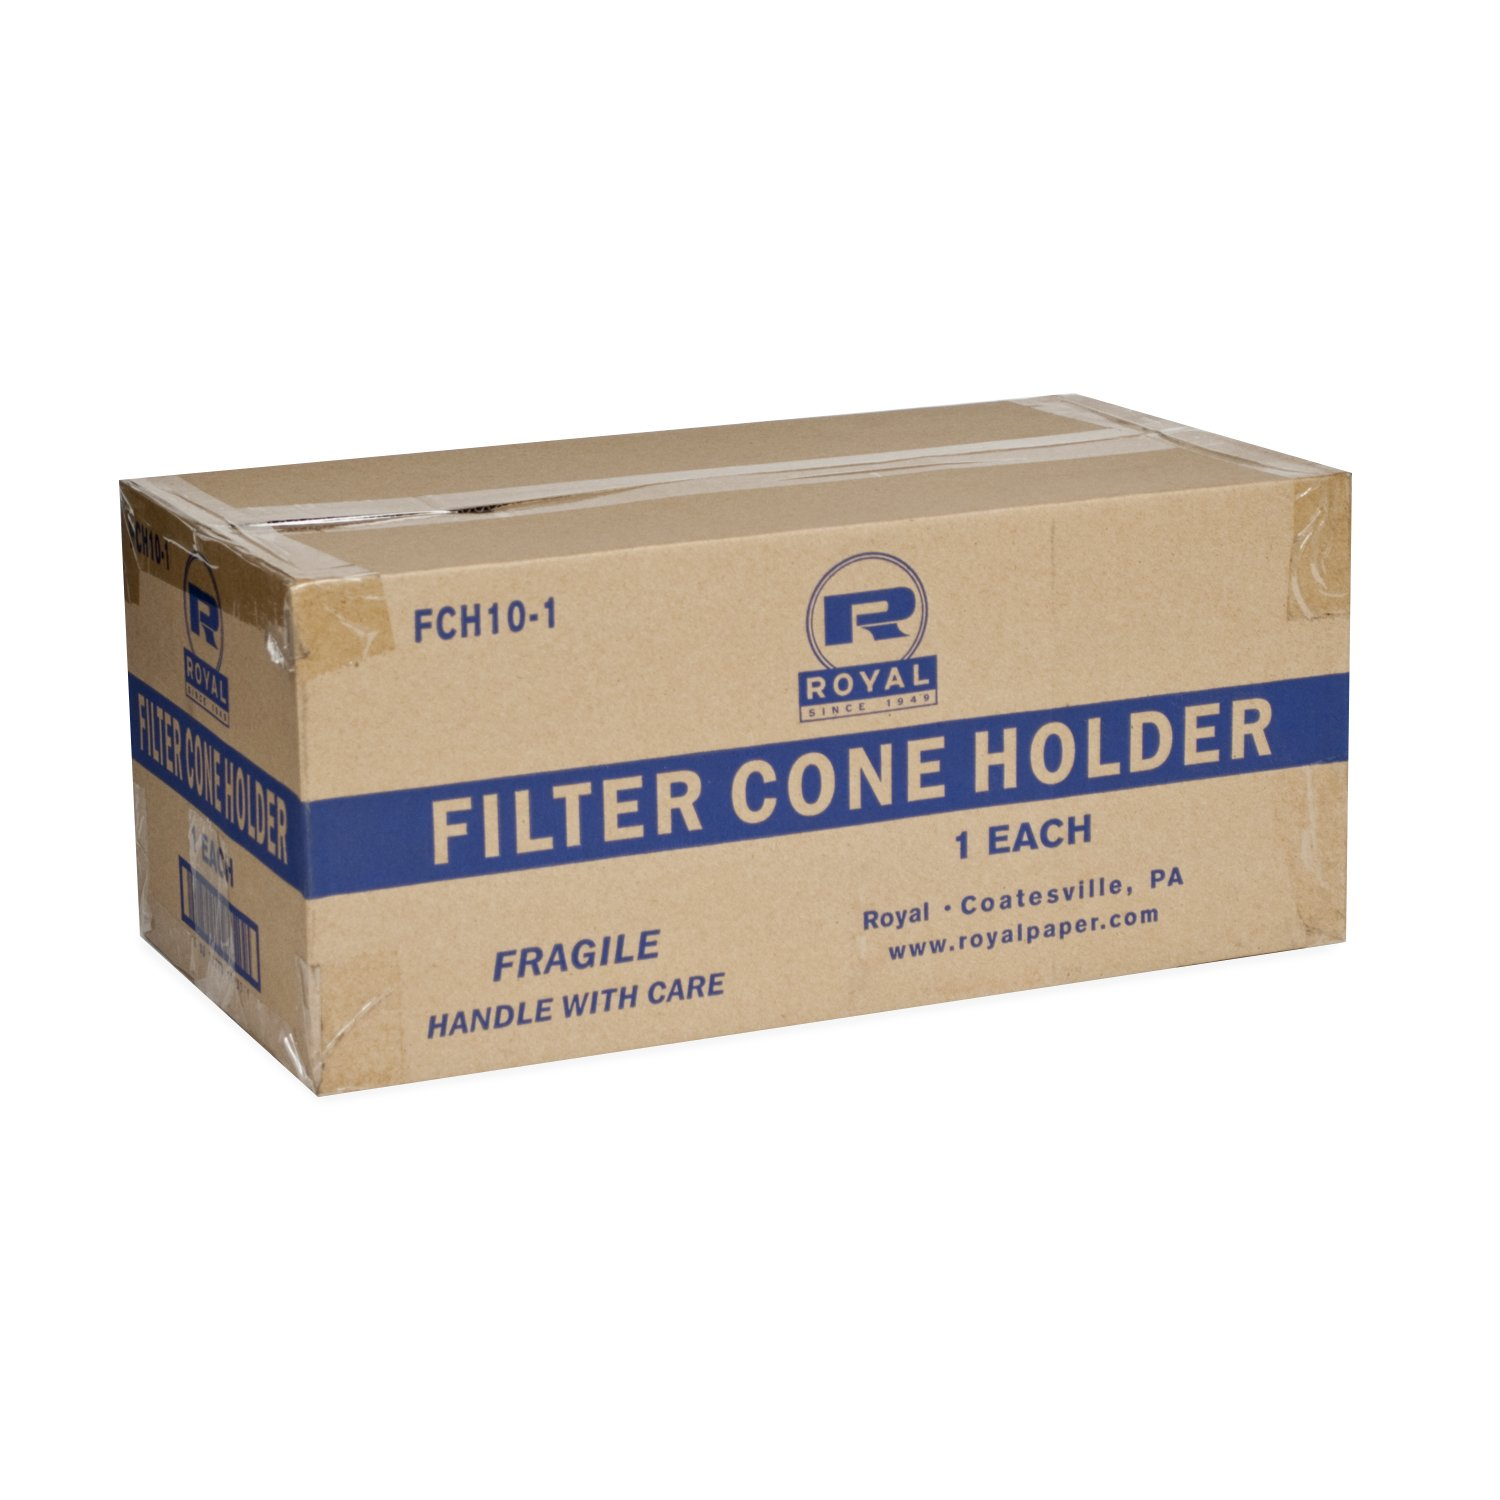 Royal Filter Cone Holders, 10'', Package of 1